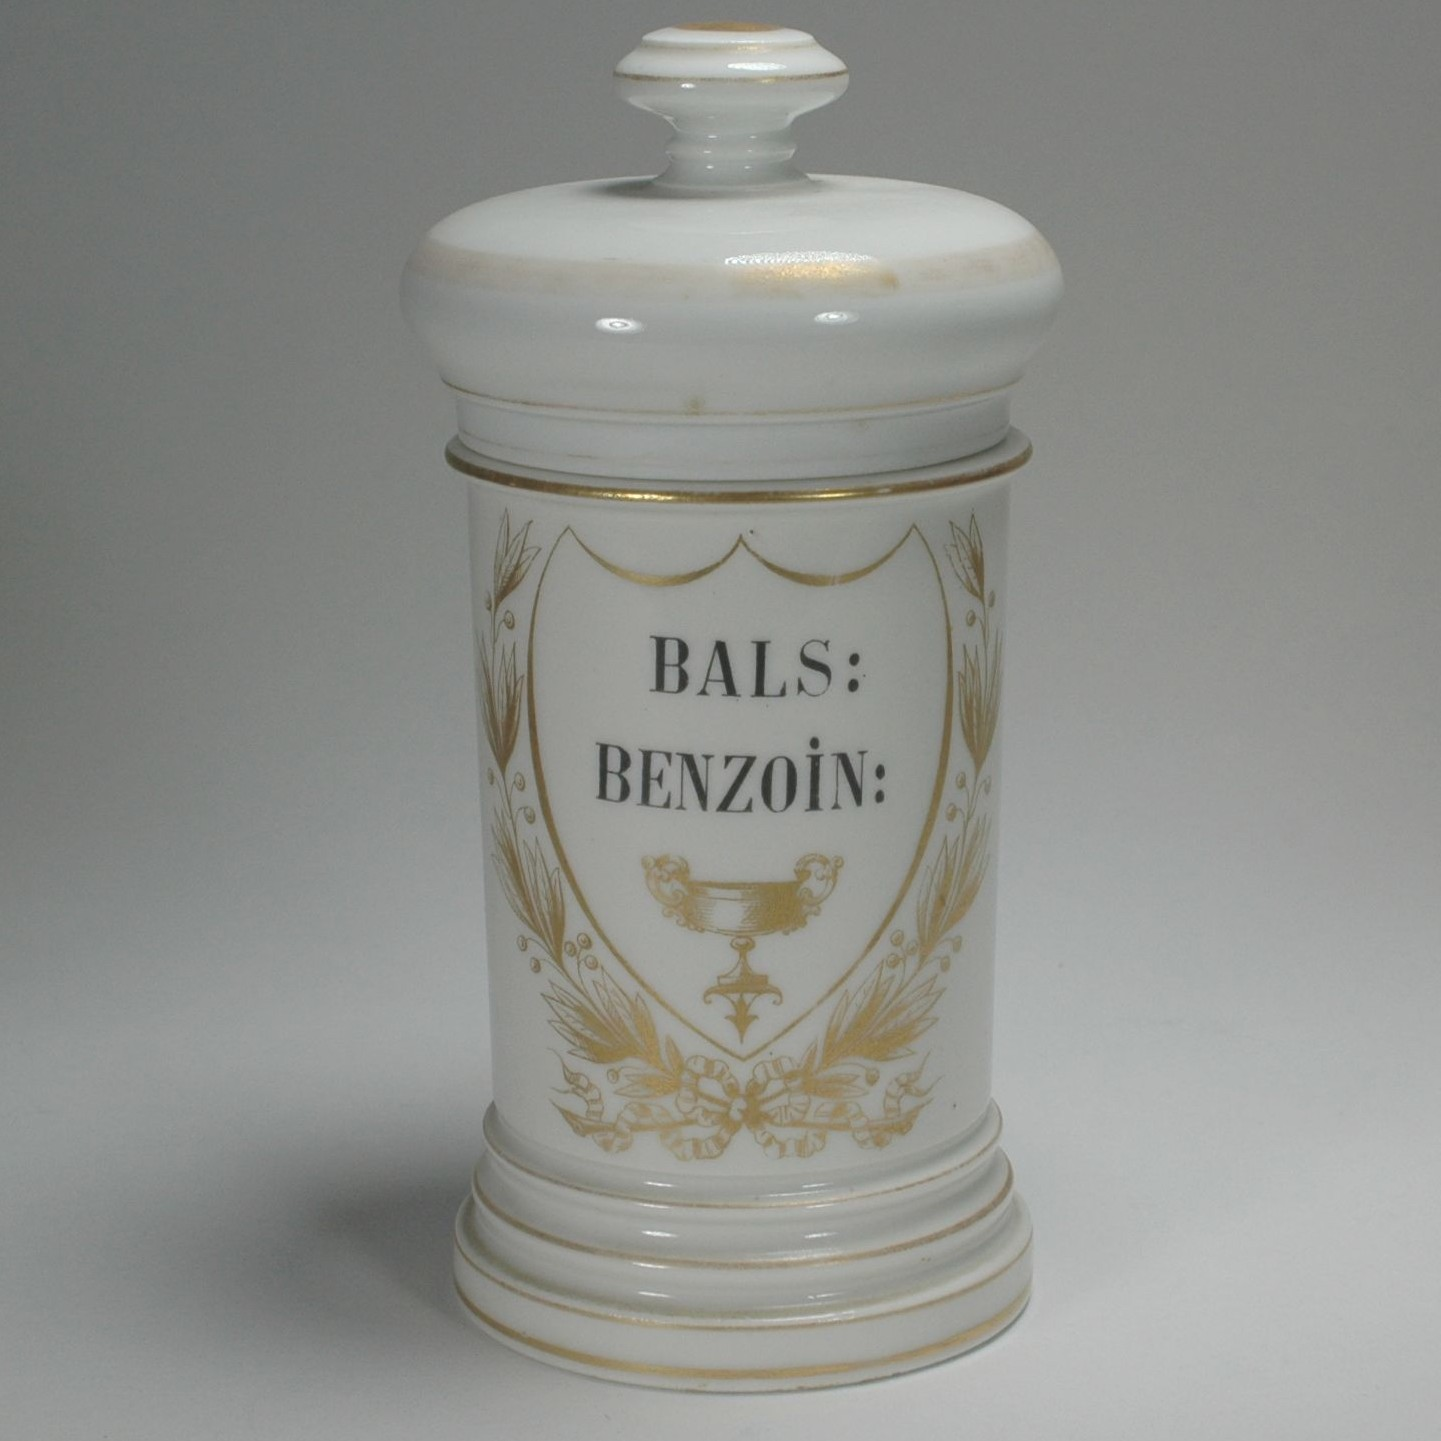 Balsam Styrax Benzoin · OnView: Digital Collections & Exhibits